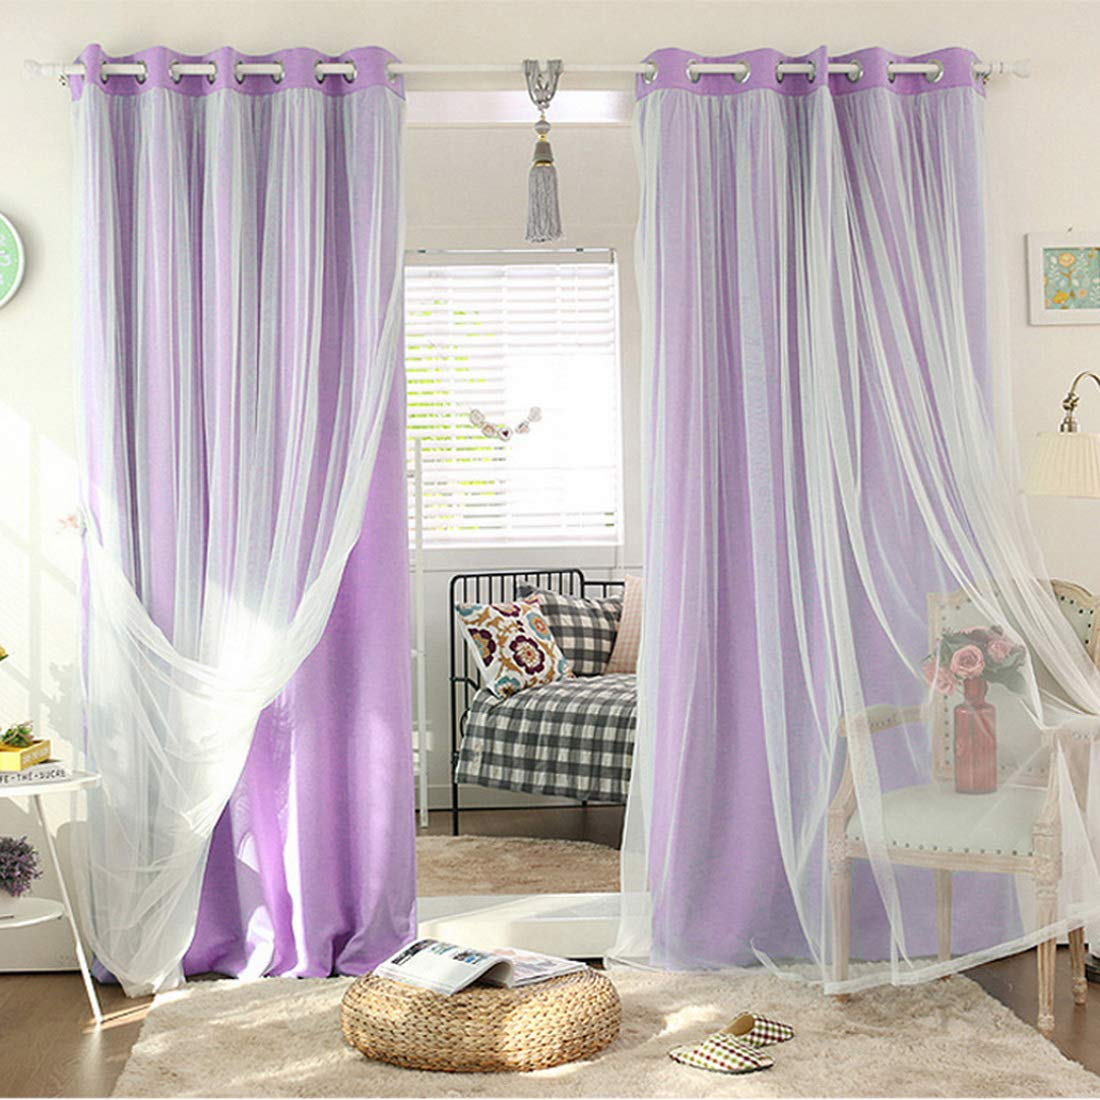 Didihou Voile Mix Match Blackout Curtain Elegant Panel Double Layer Darkening Thermal Insulated Window Treatment Grommet Drapes for Living Room Girls Bedroom, 1 Panel (42W x 84L Inch, Light Purple)